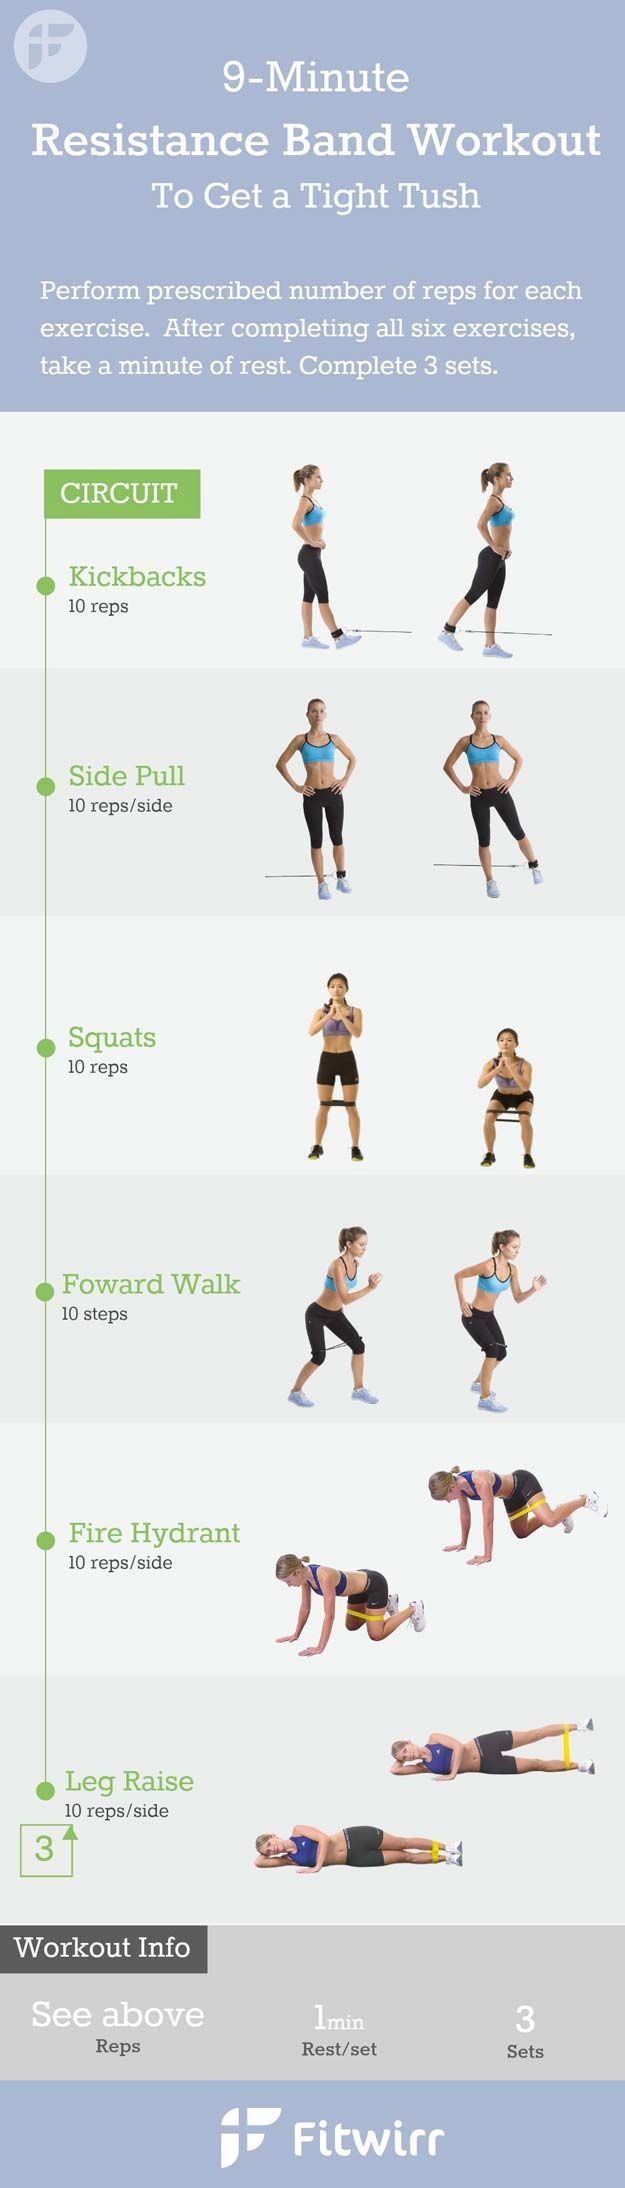 Quick Workouts You Can Do on Your Lunch Break - 9-Min Resistance Band Workout - Awesome Full Body Workouts You Can Do Right At Home or On Your Lunch Break- Cardio Routine for Beginners, Abs Exercises You Can Bang Out Before Shower - You Don't Need to Hit  https://www.musclesaurus.com/flat-stomach-exercises/